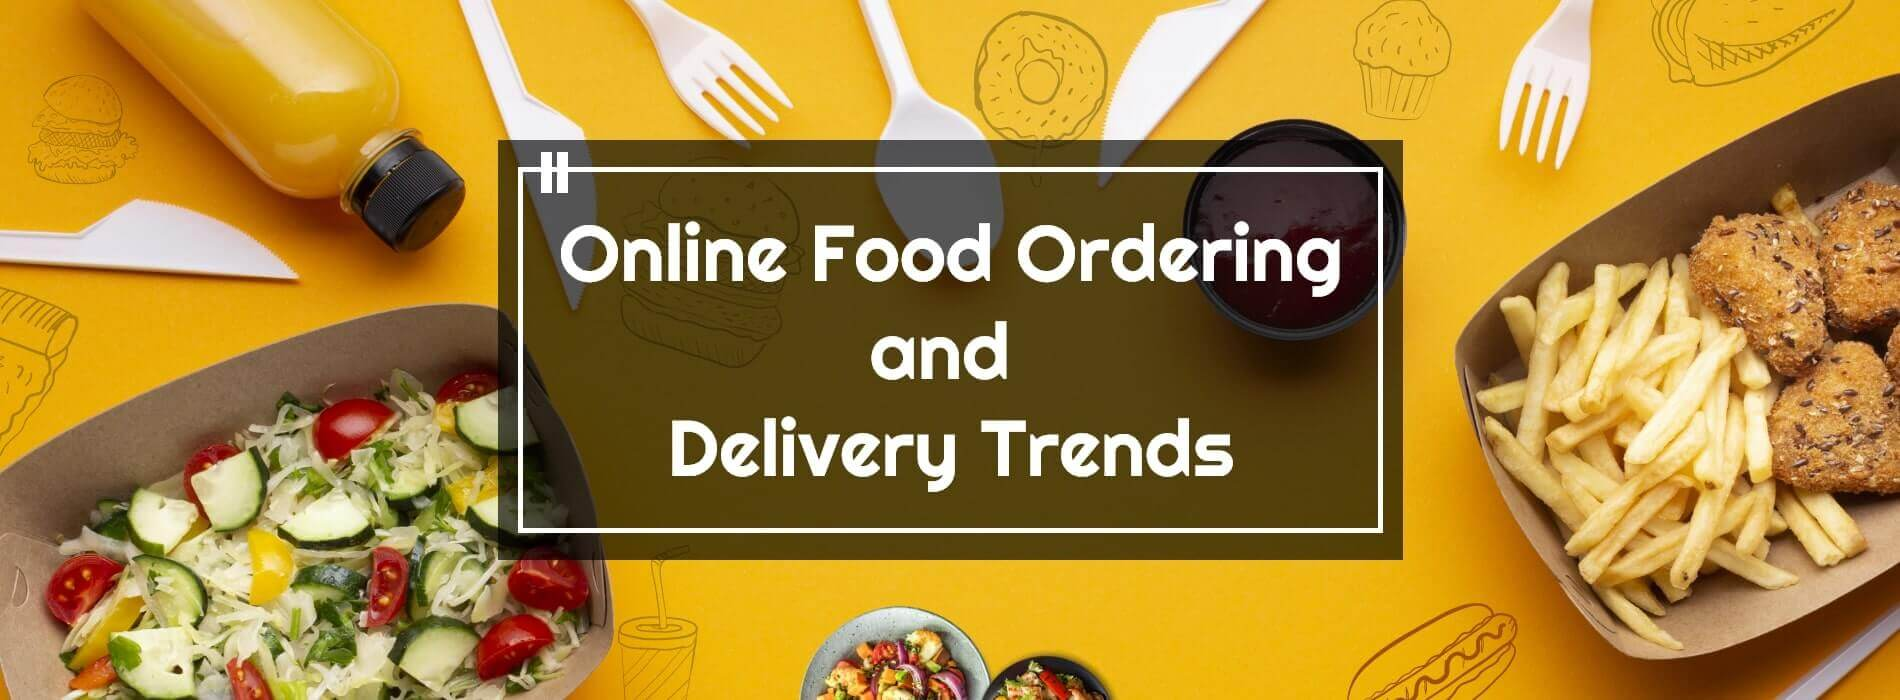 Online Food Ordering and Delivery Trends In 2020